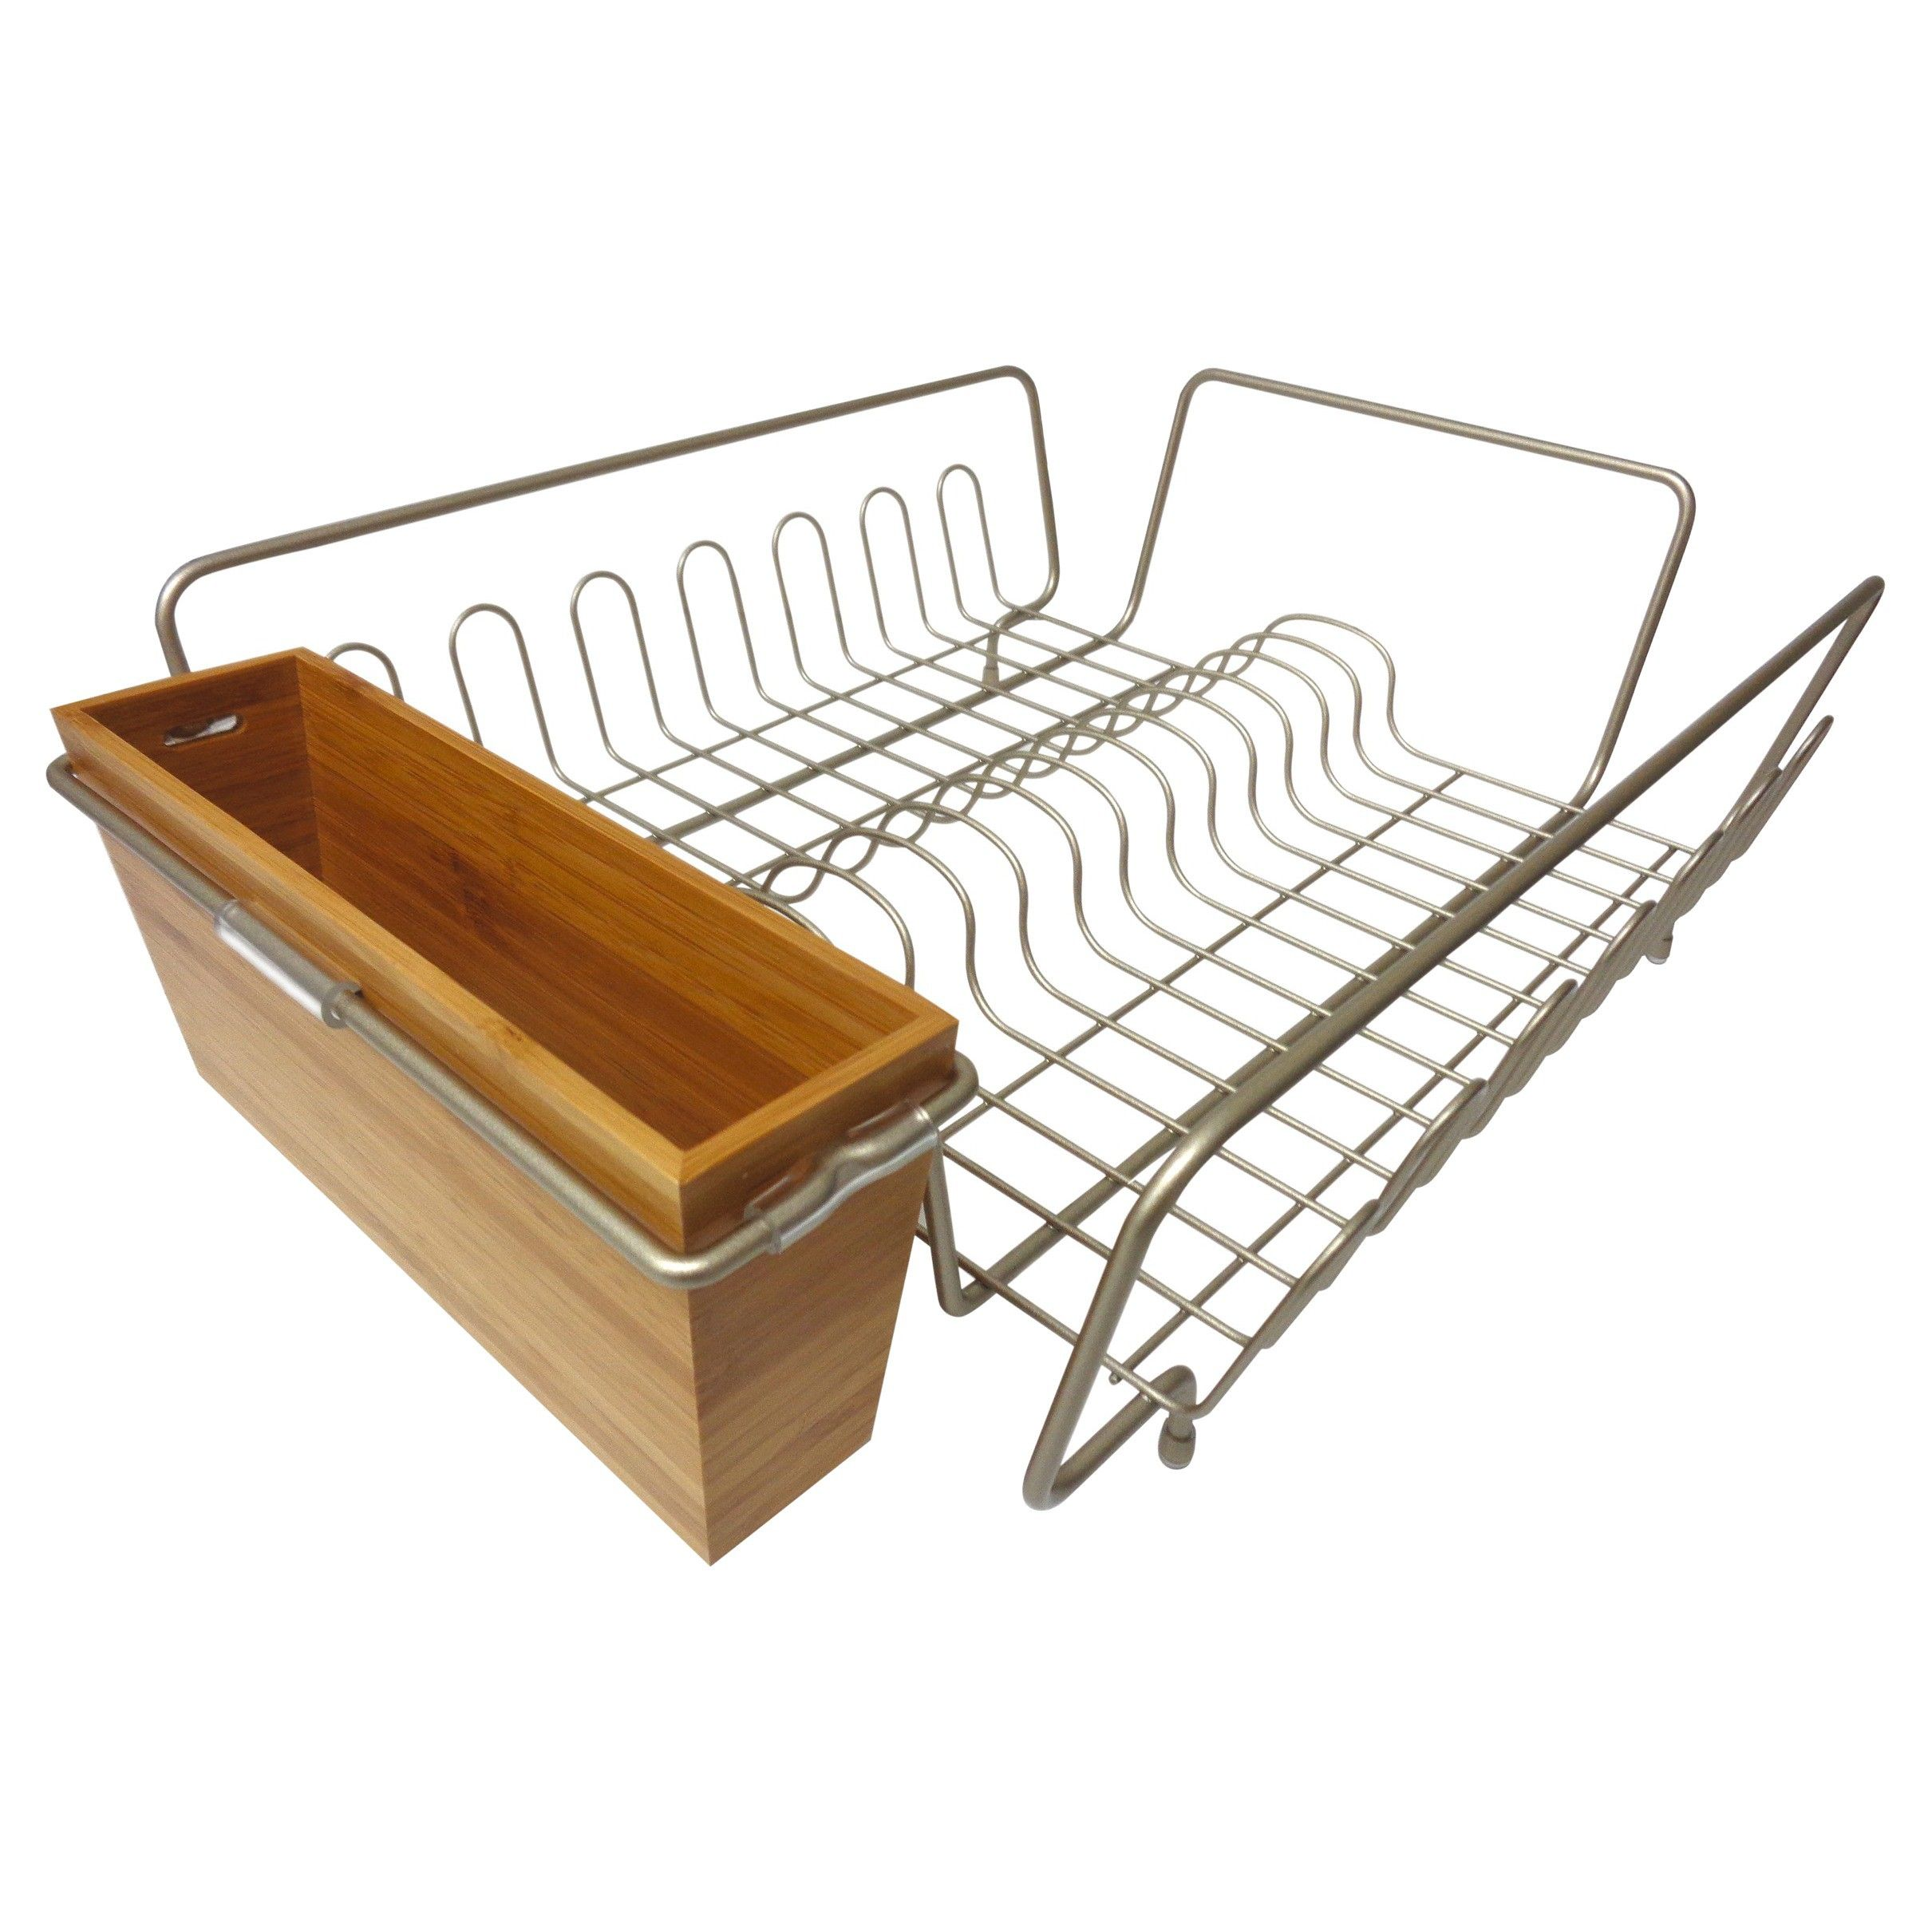 Target Dish Drying Rack Threshold Steel 1 Number Of Pieces In Set Dish D Target